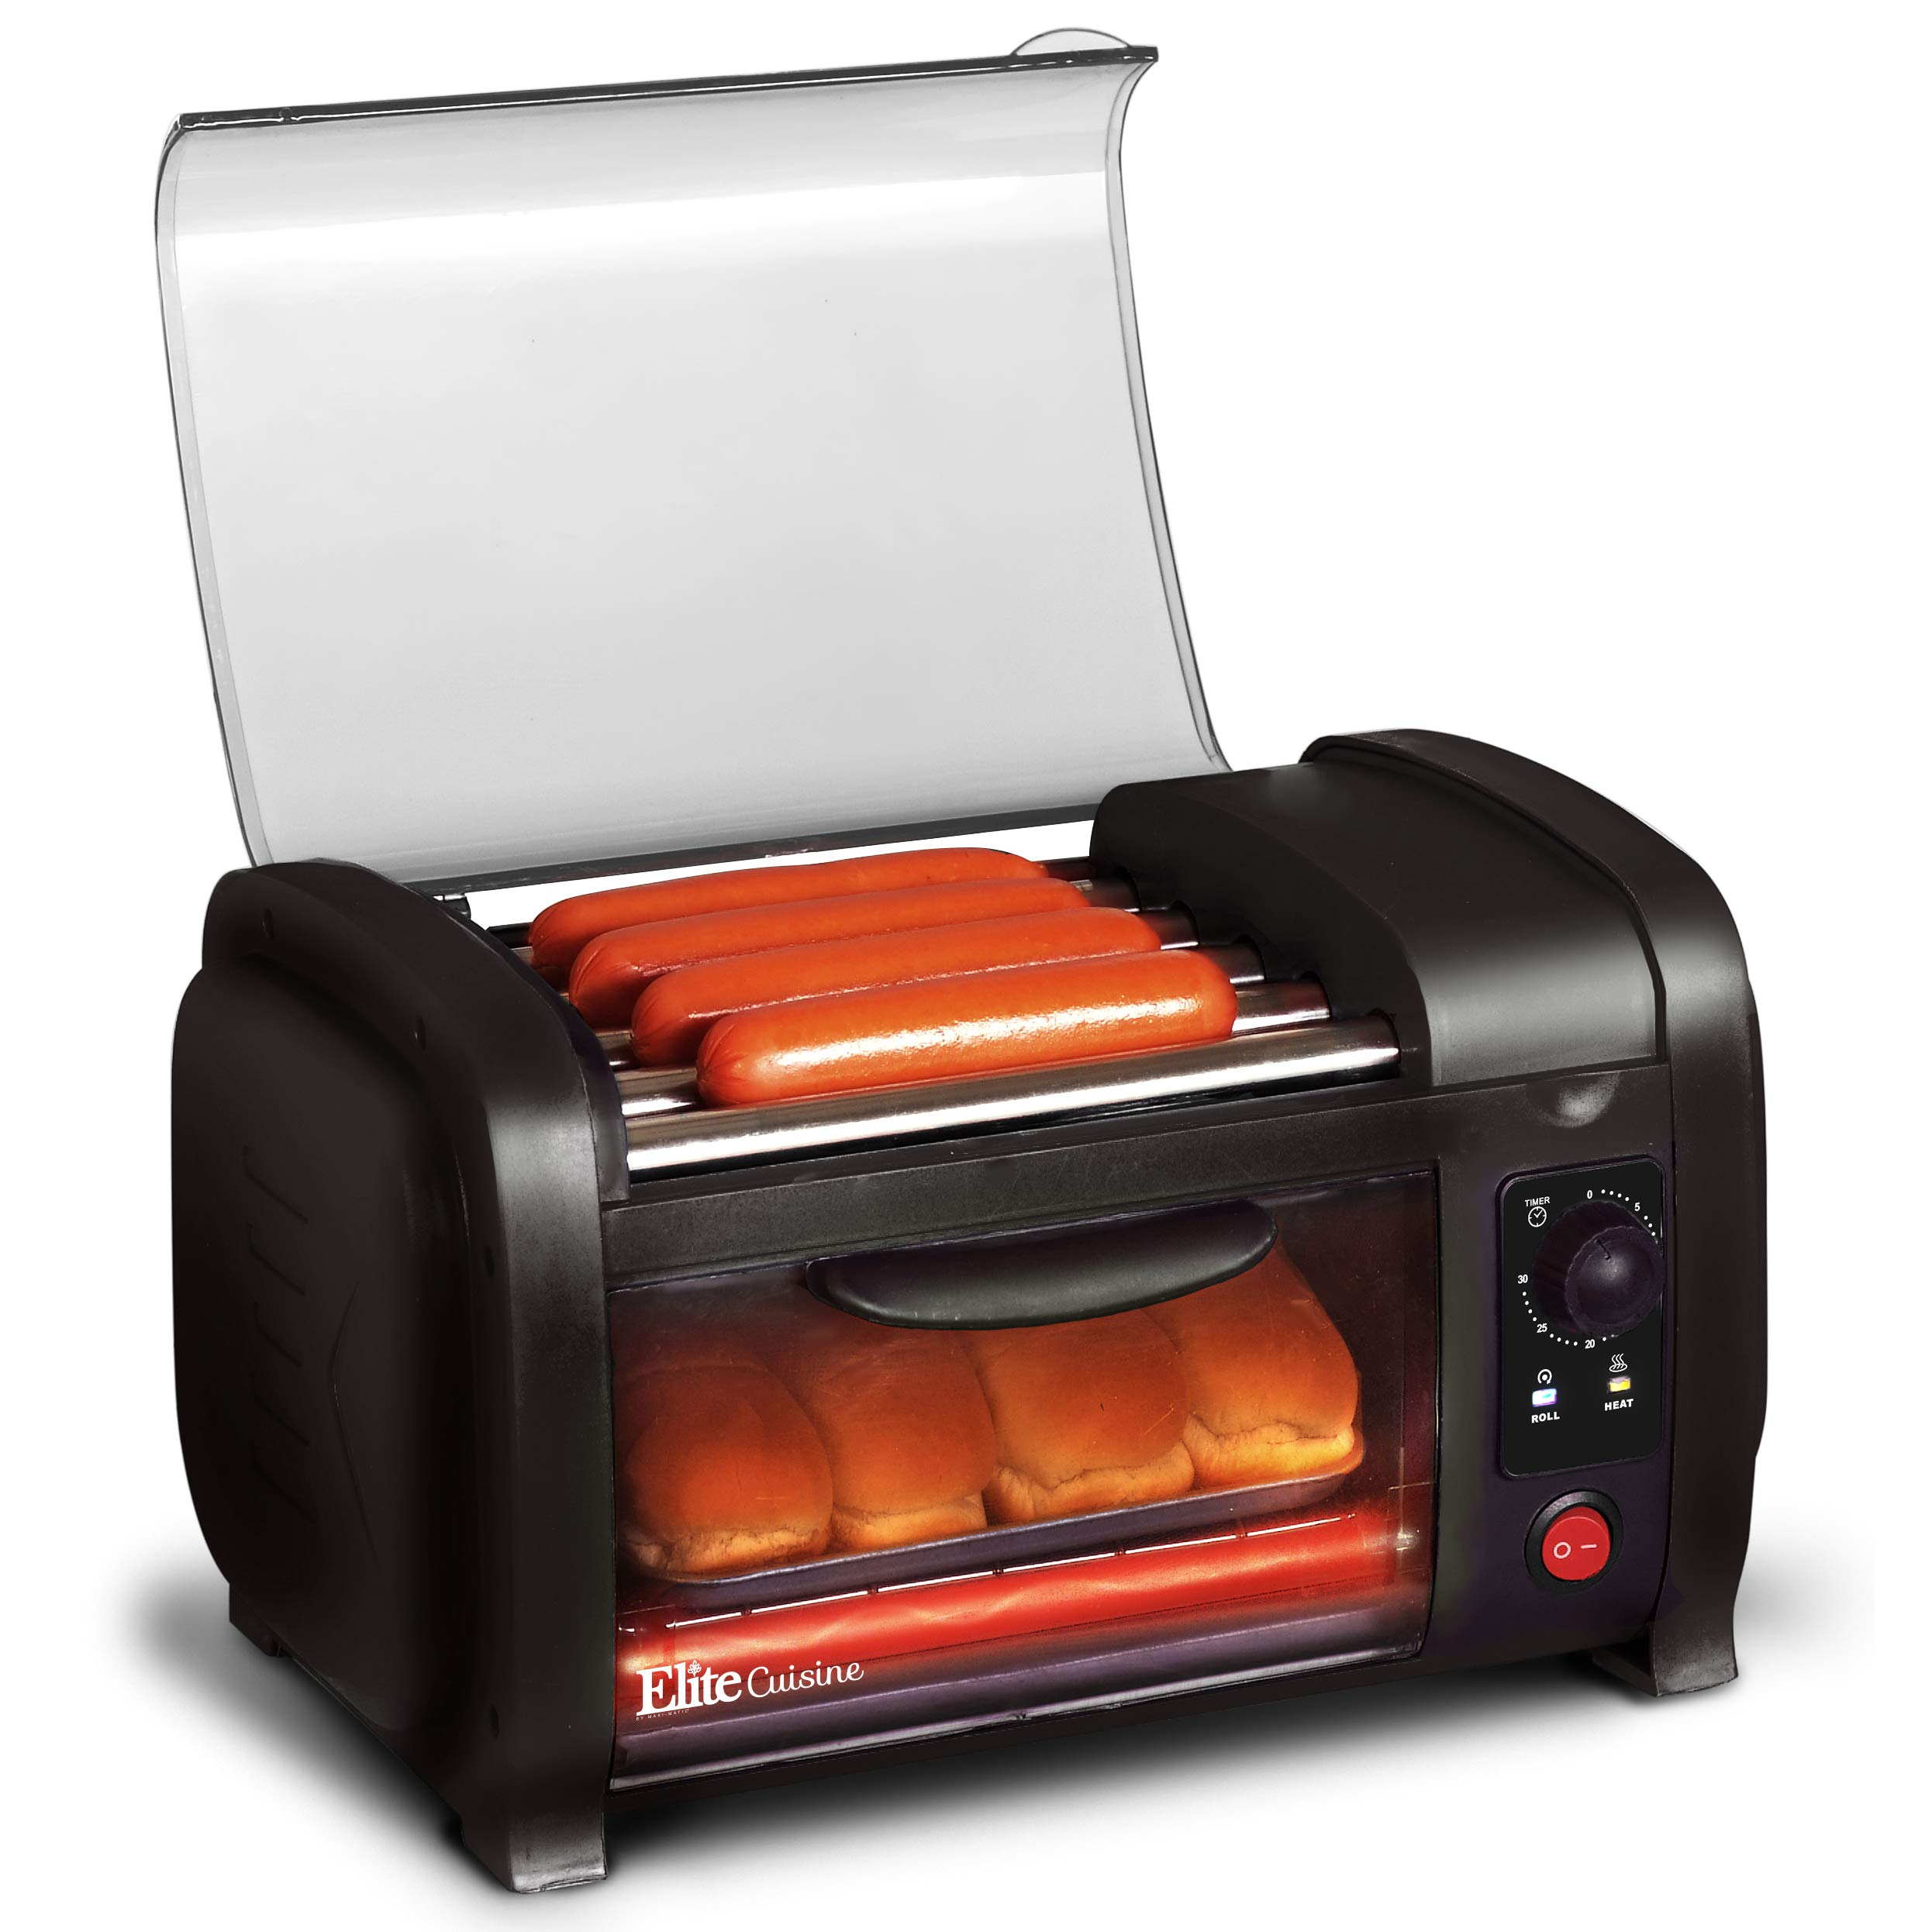 Elite Cuisine EHD-051B Hot Dog Toaster Oven, 30-Min Timer, Stainless Steel Heat Rollers Bake & Crumb Tray, World Series Baseball, 4 Bun Capacity, Black by Maxi-Matic